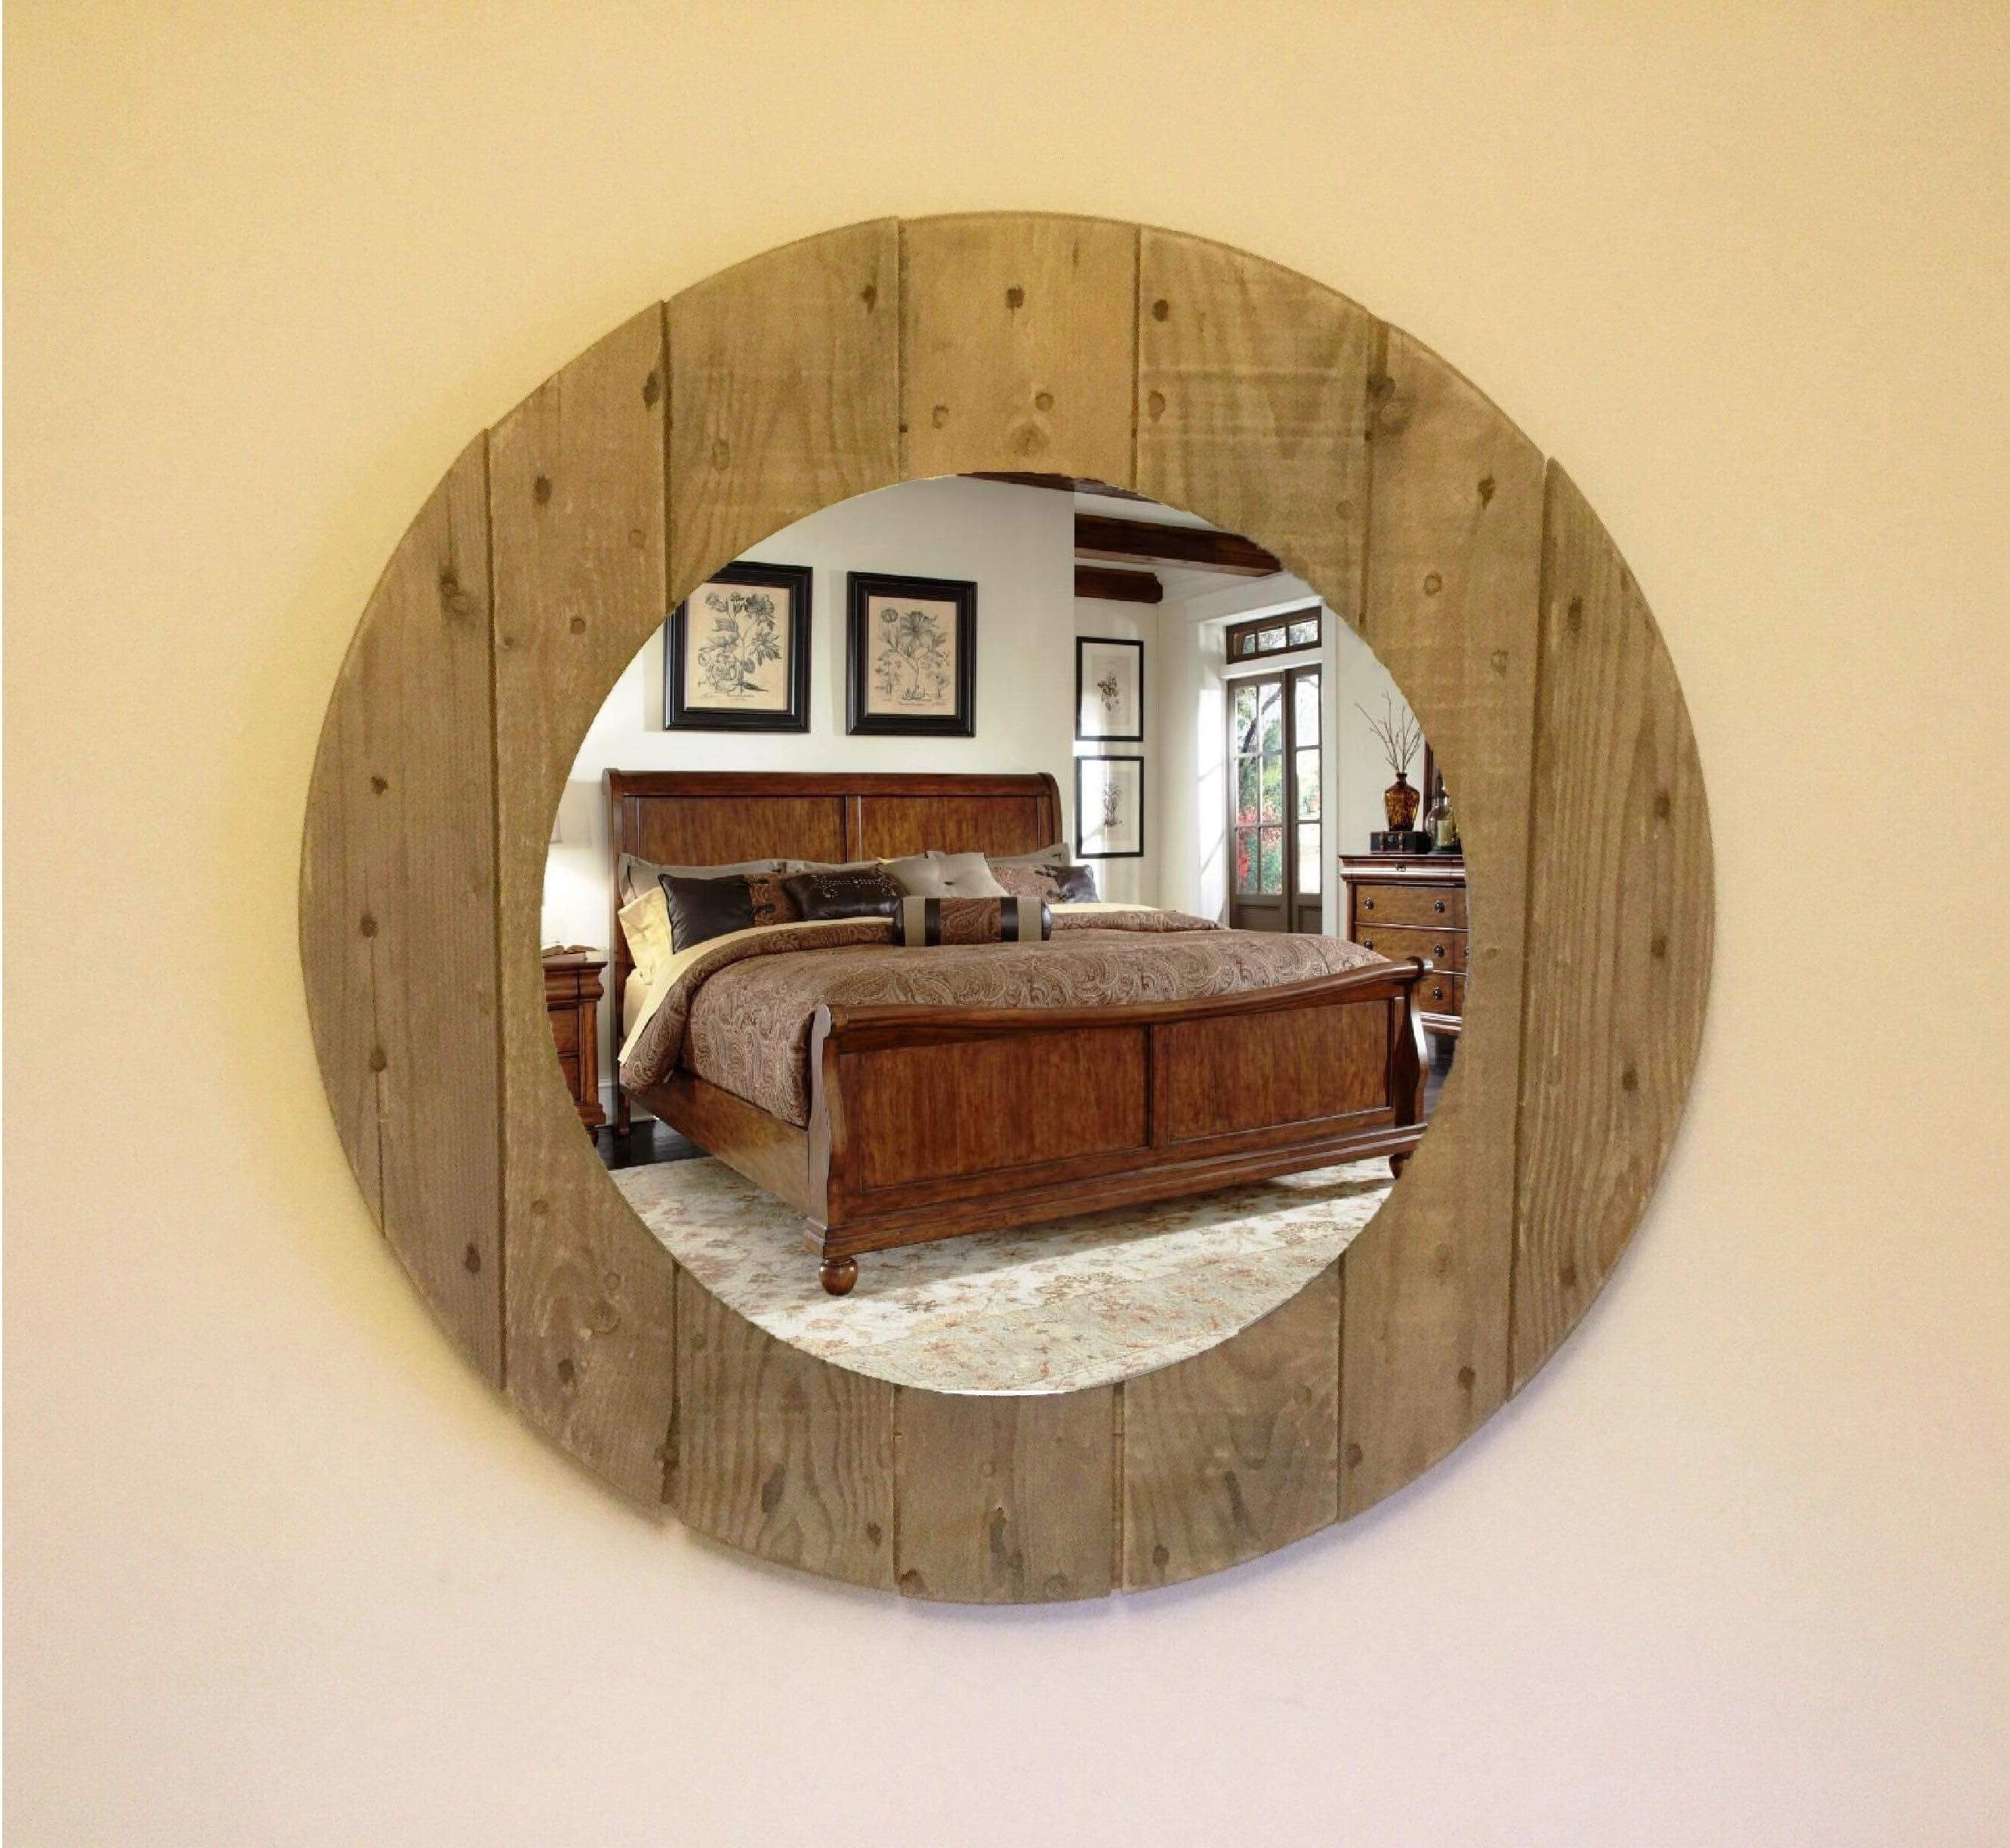 Recycled Rustic Reclaimed Wooden Cable Reel Wall Mirror